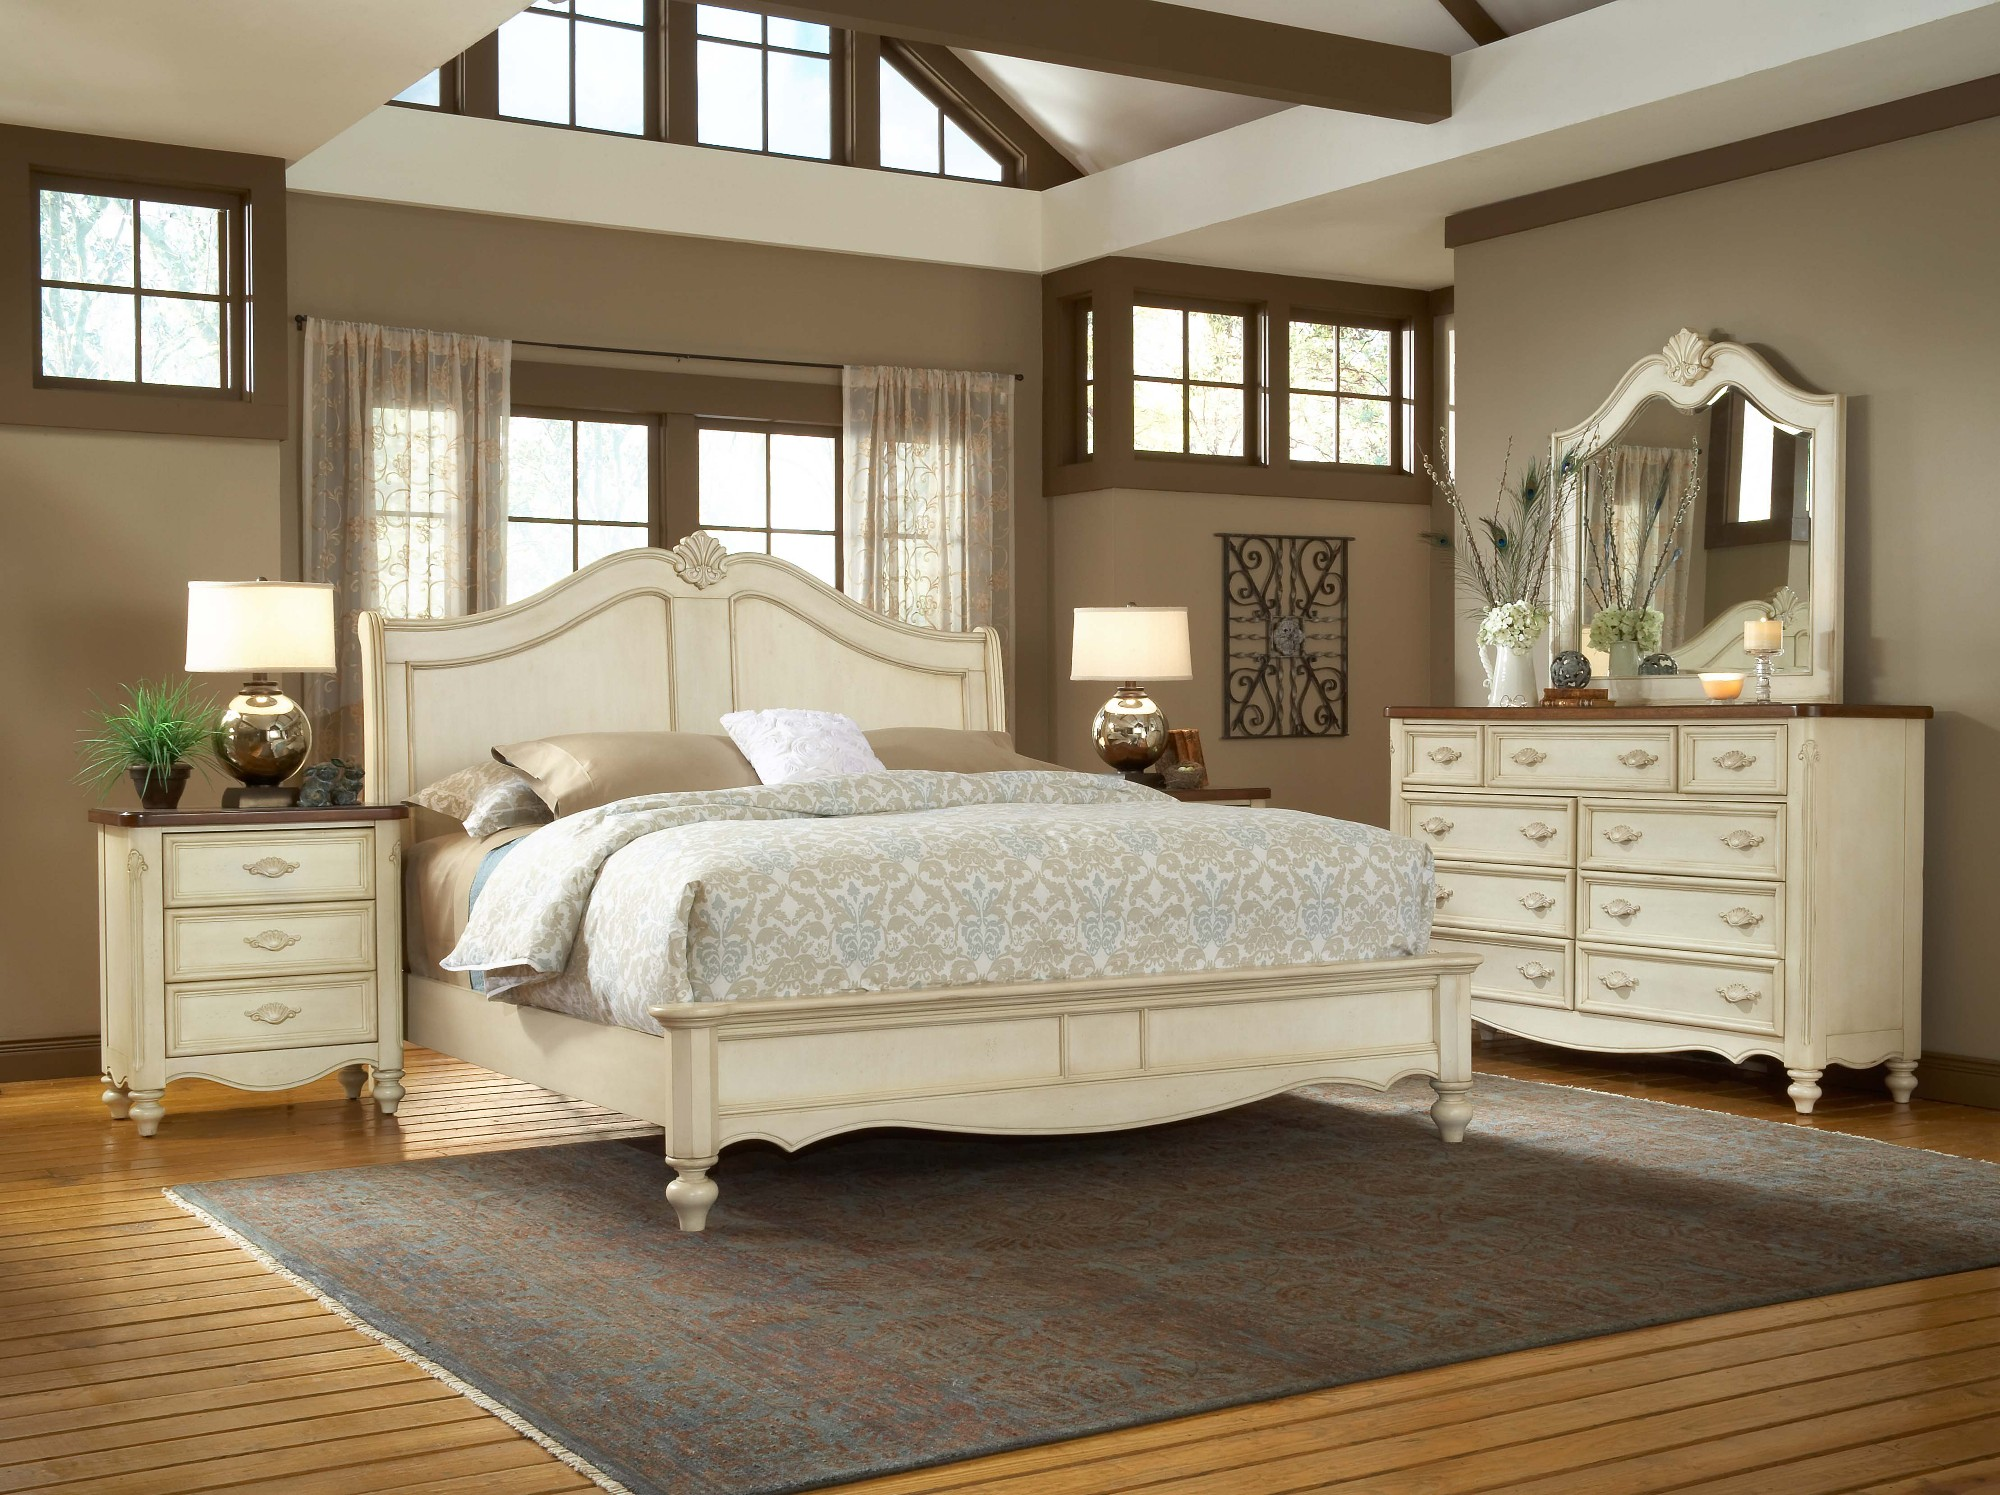 Bedroom Furniture Sets Long Island